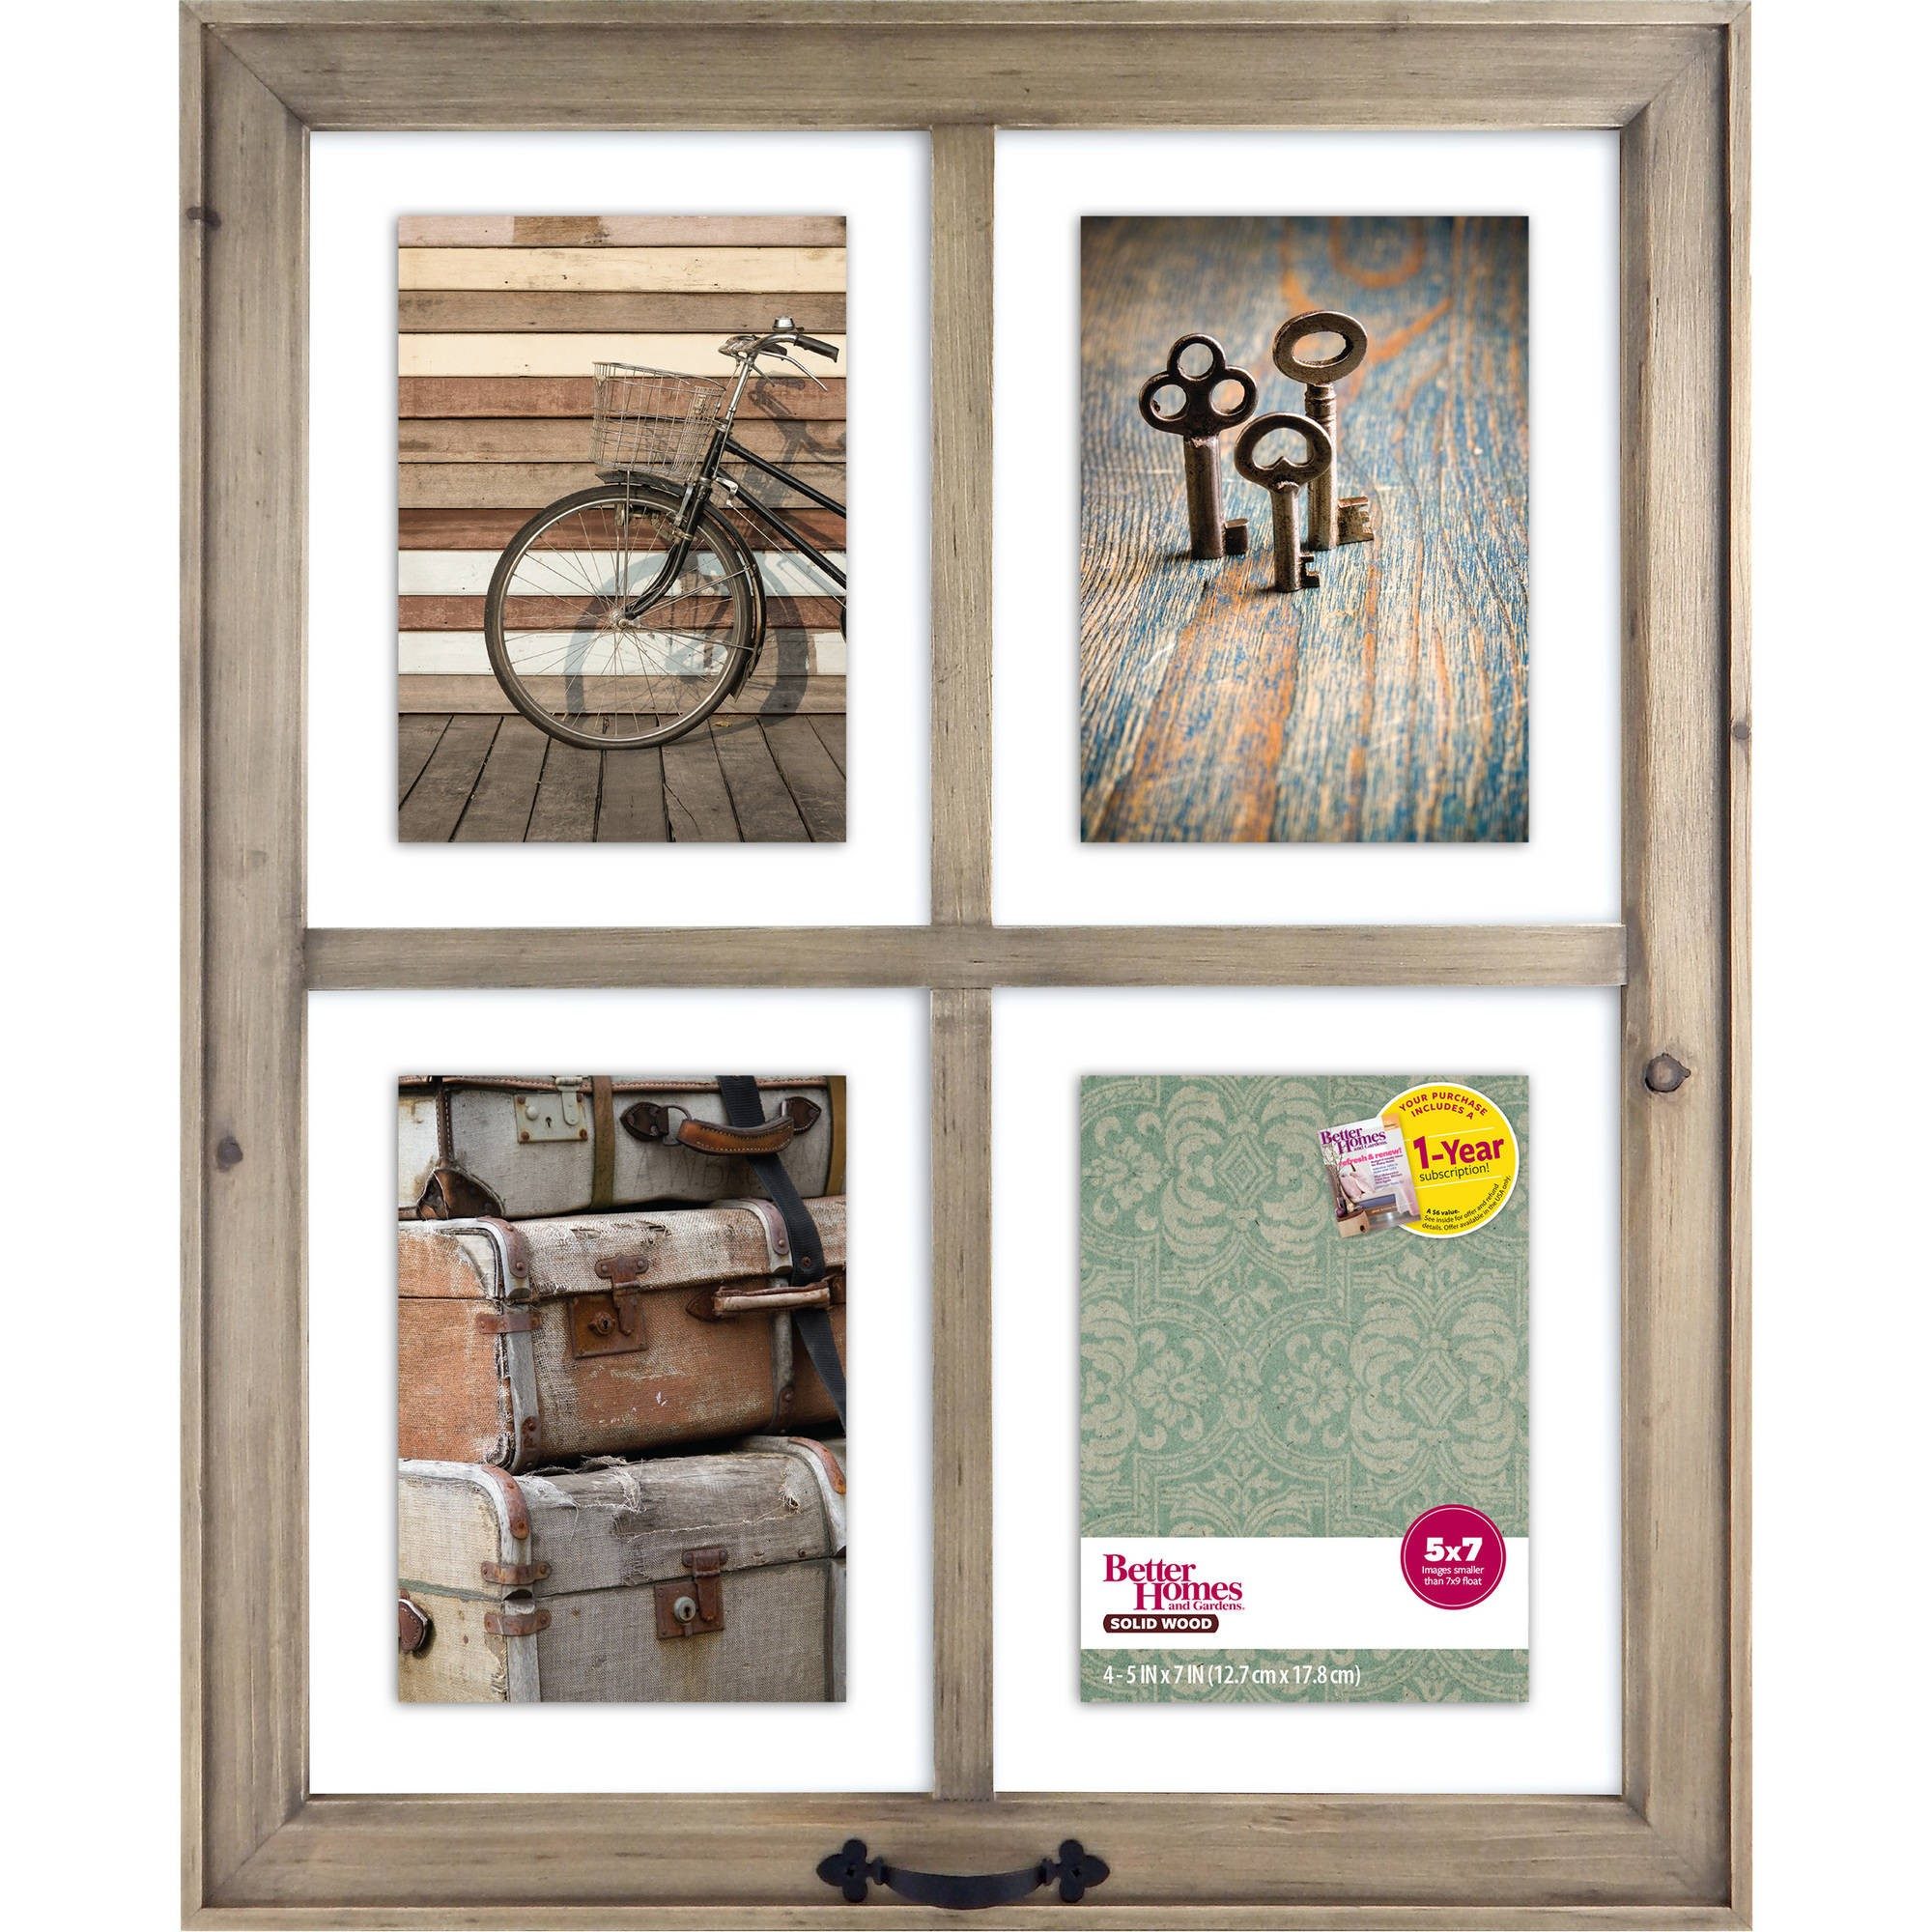 Better Homes & Gardens 4-Open Windowpane Frame